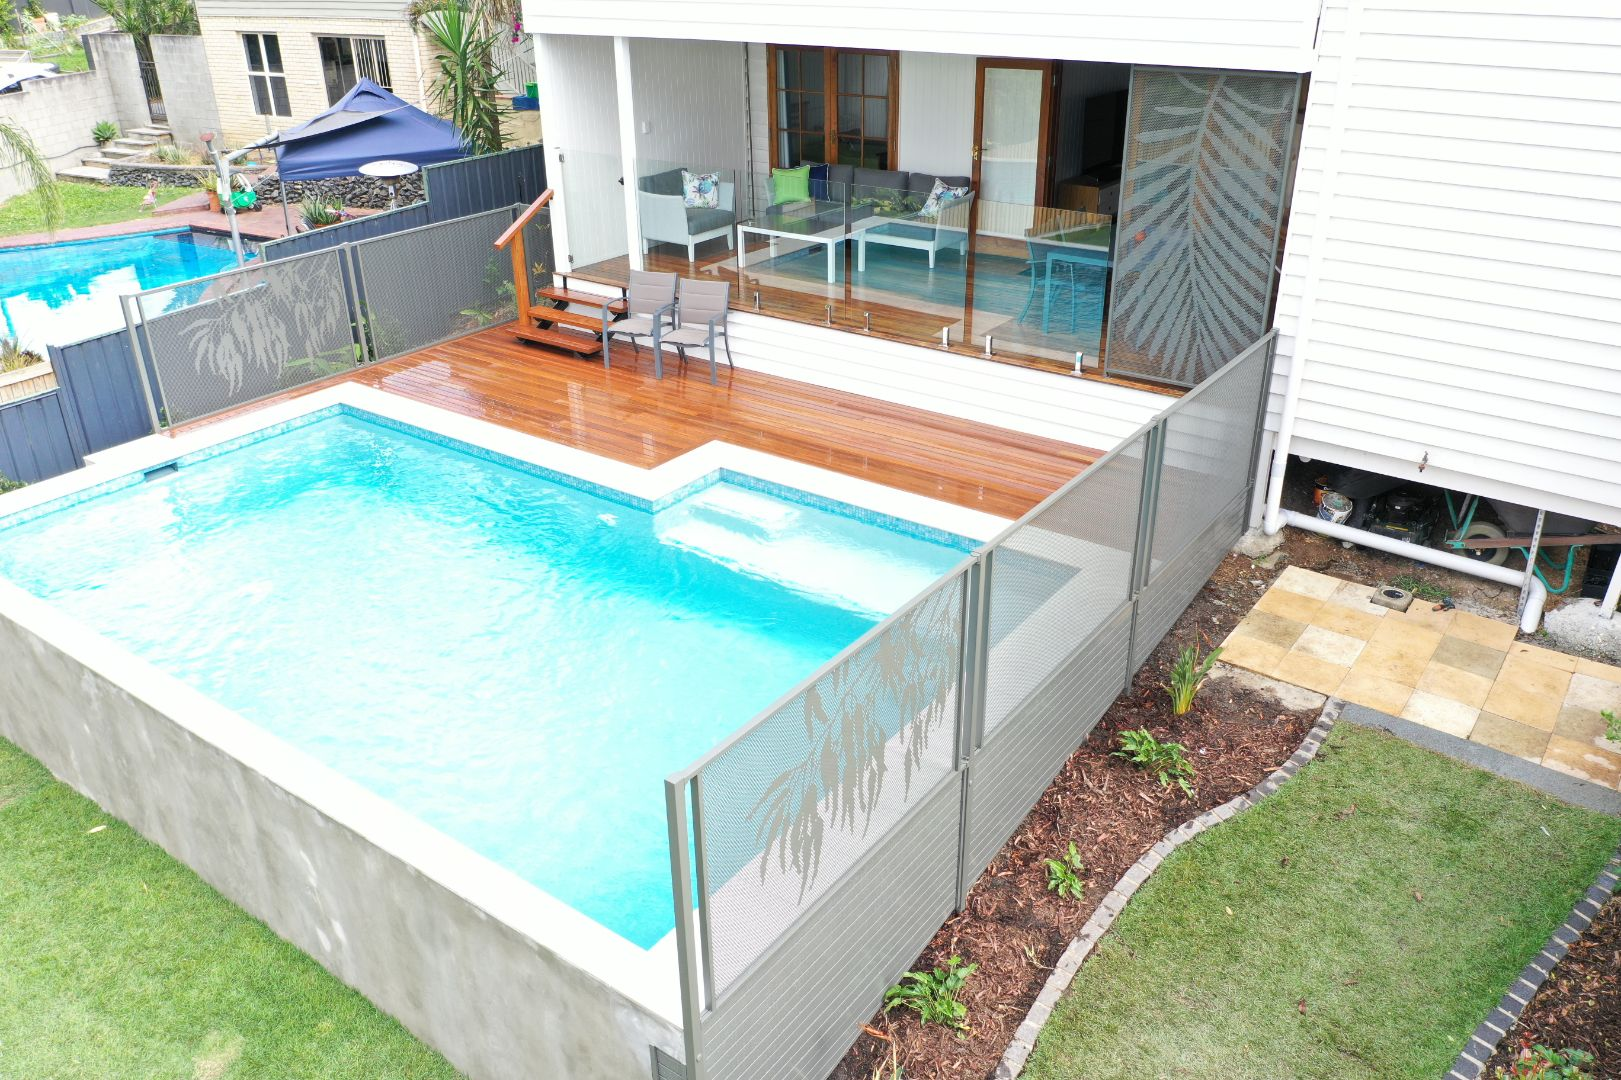 Pool perf palm and gum fencing design perforated pool fencing for concrete pool leaf design glass fencing